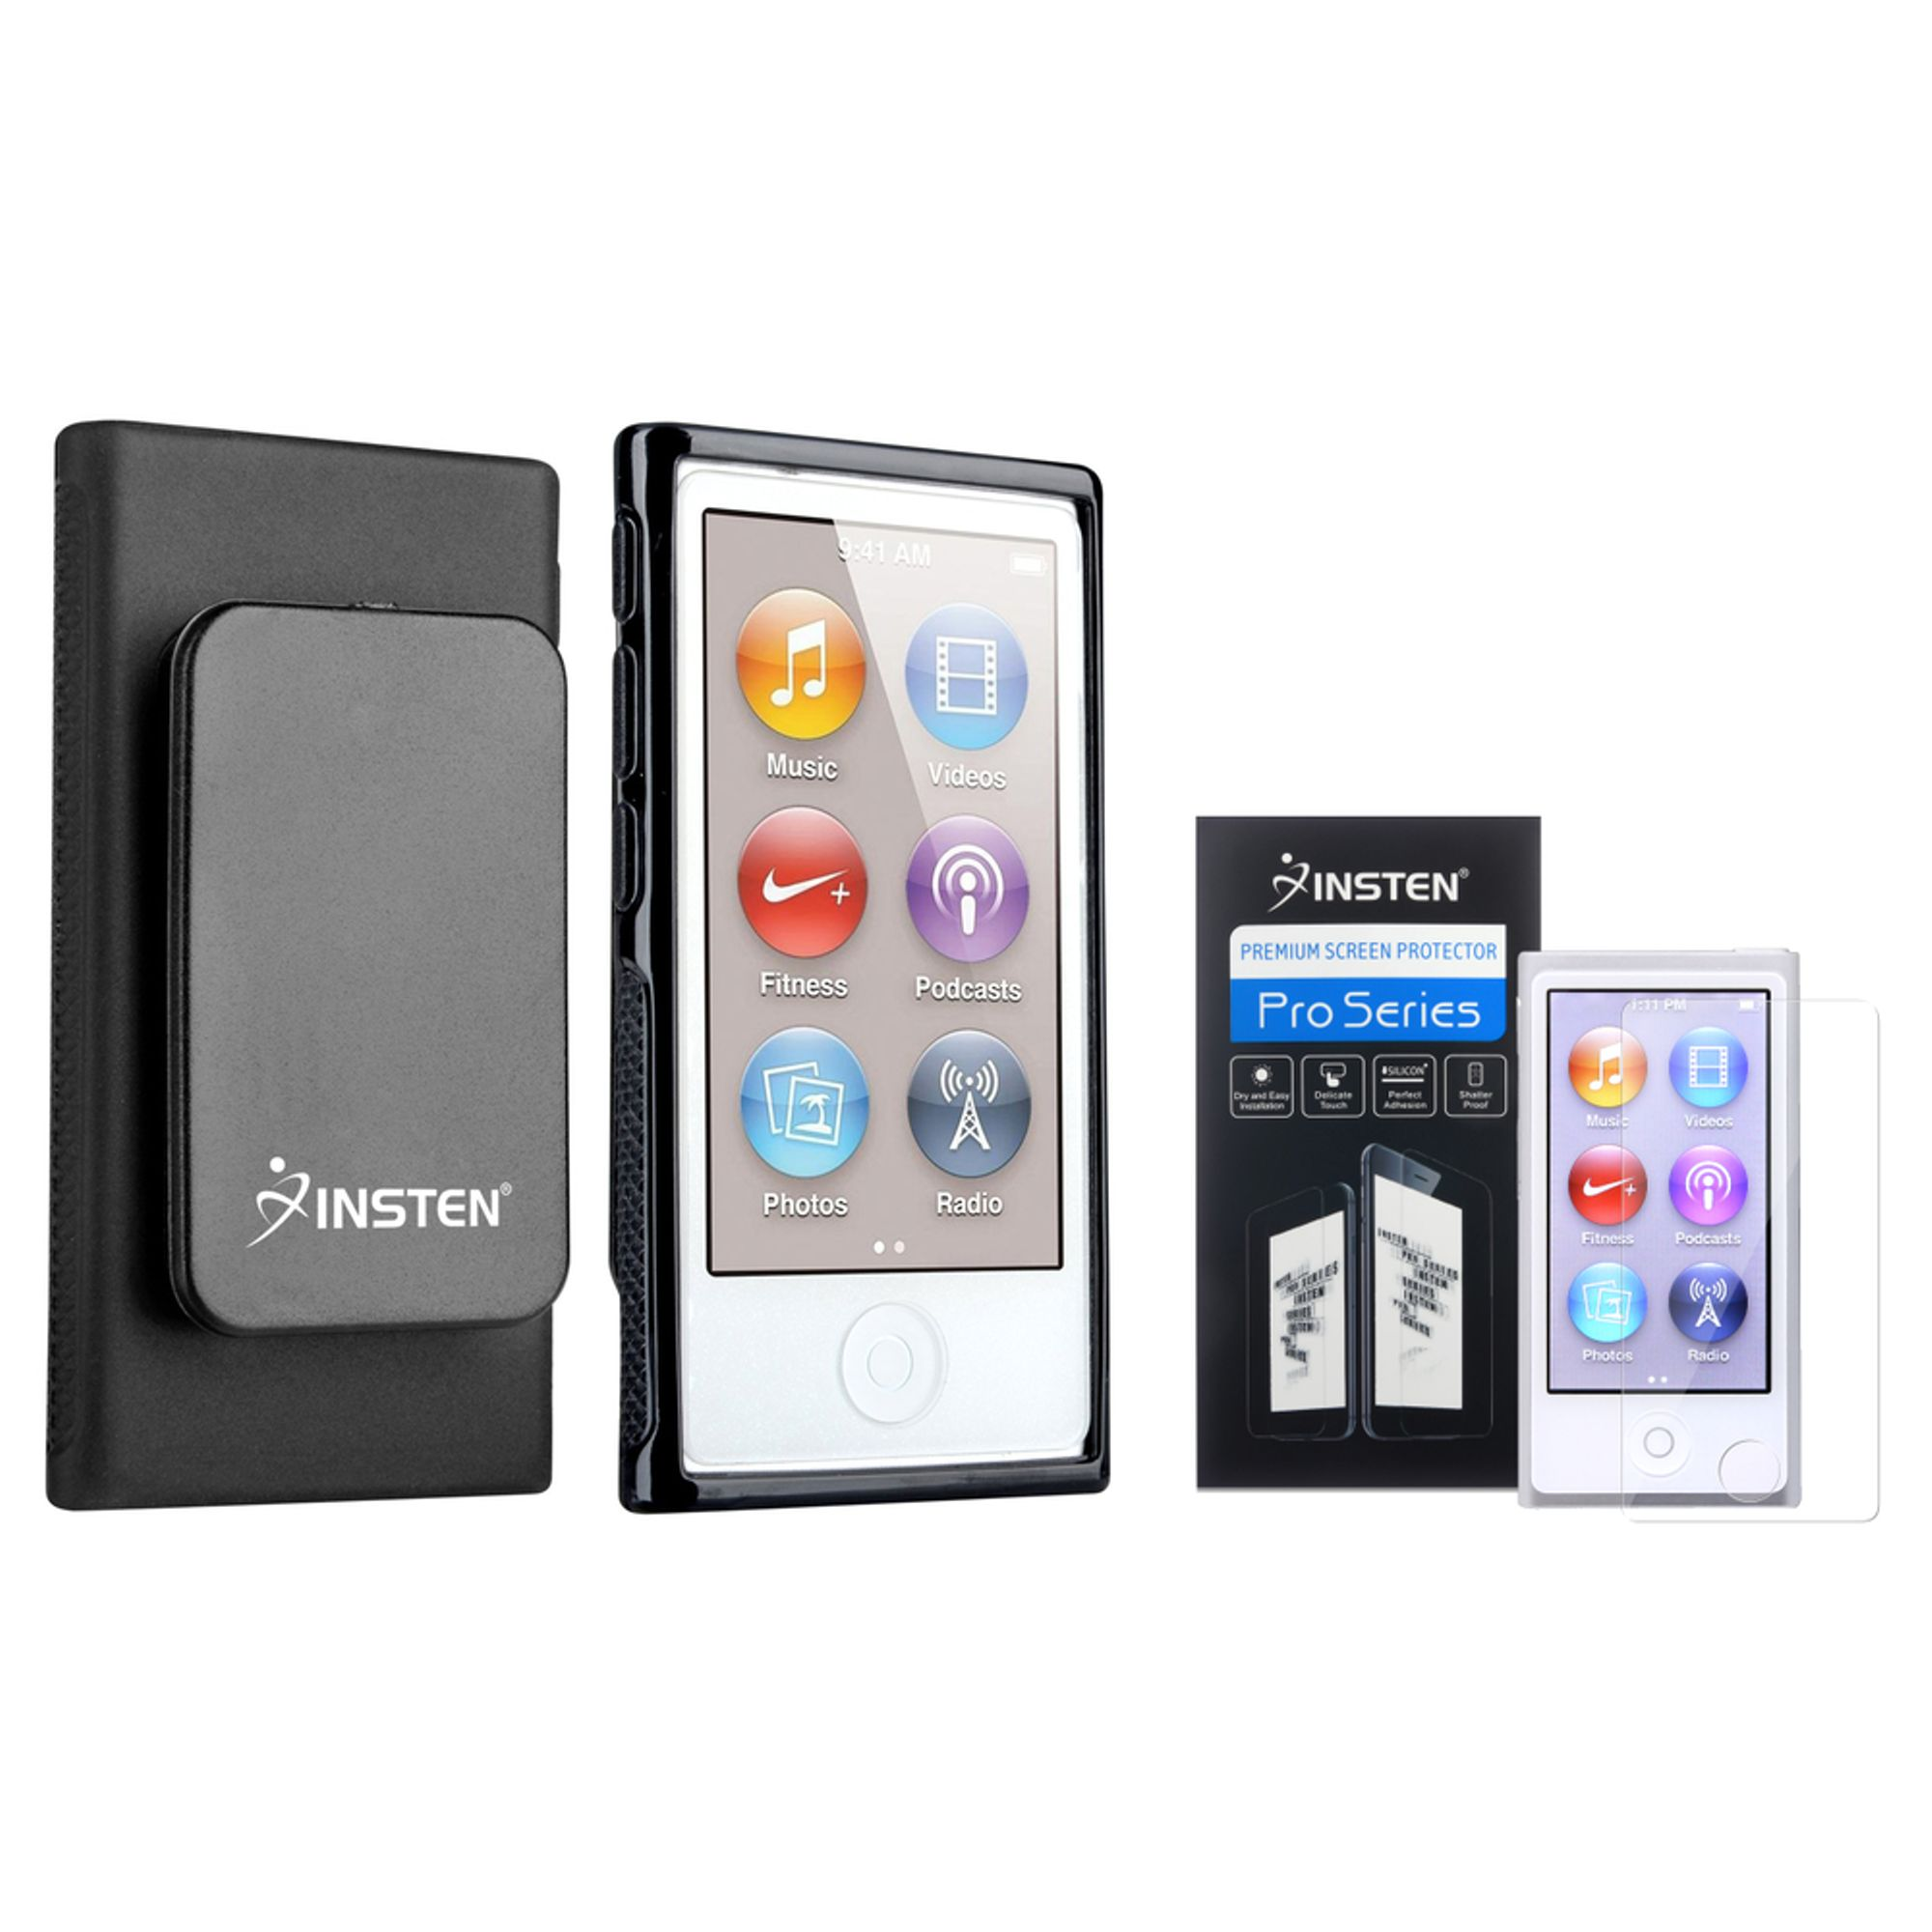 Insten Black TPU Soft Case With Belt Clip+Clear Screen Protector For iPod Nano 7 Gen